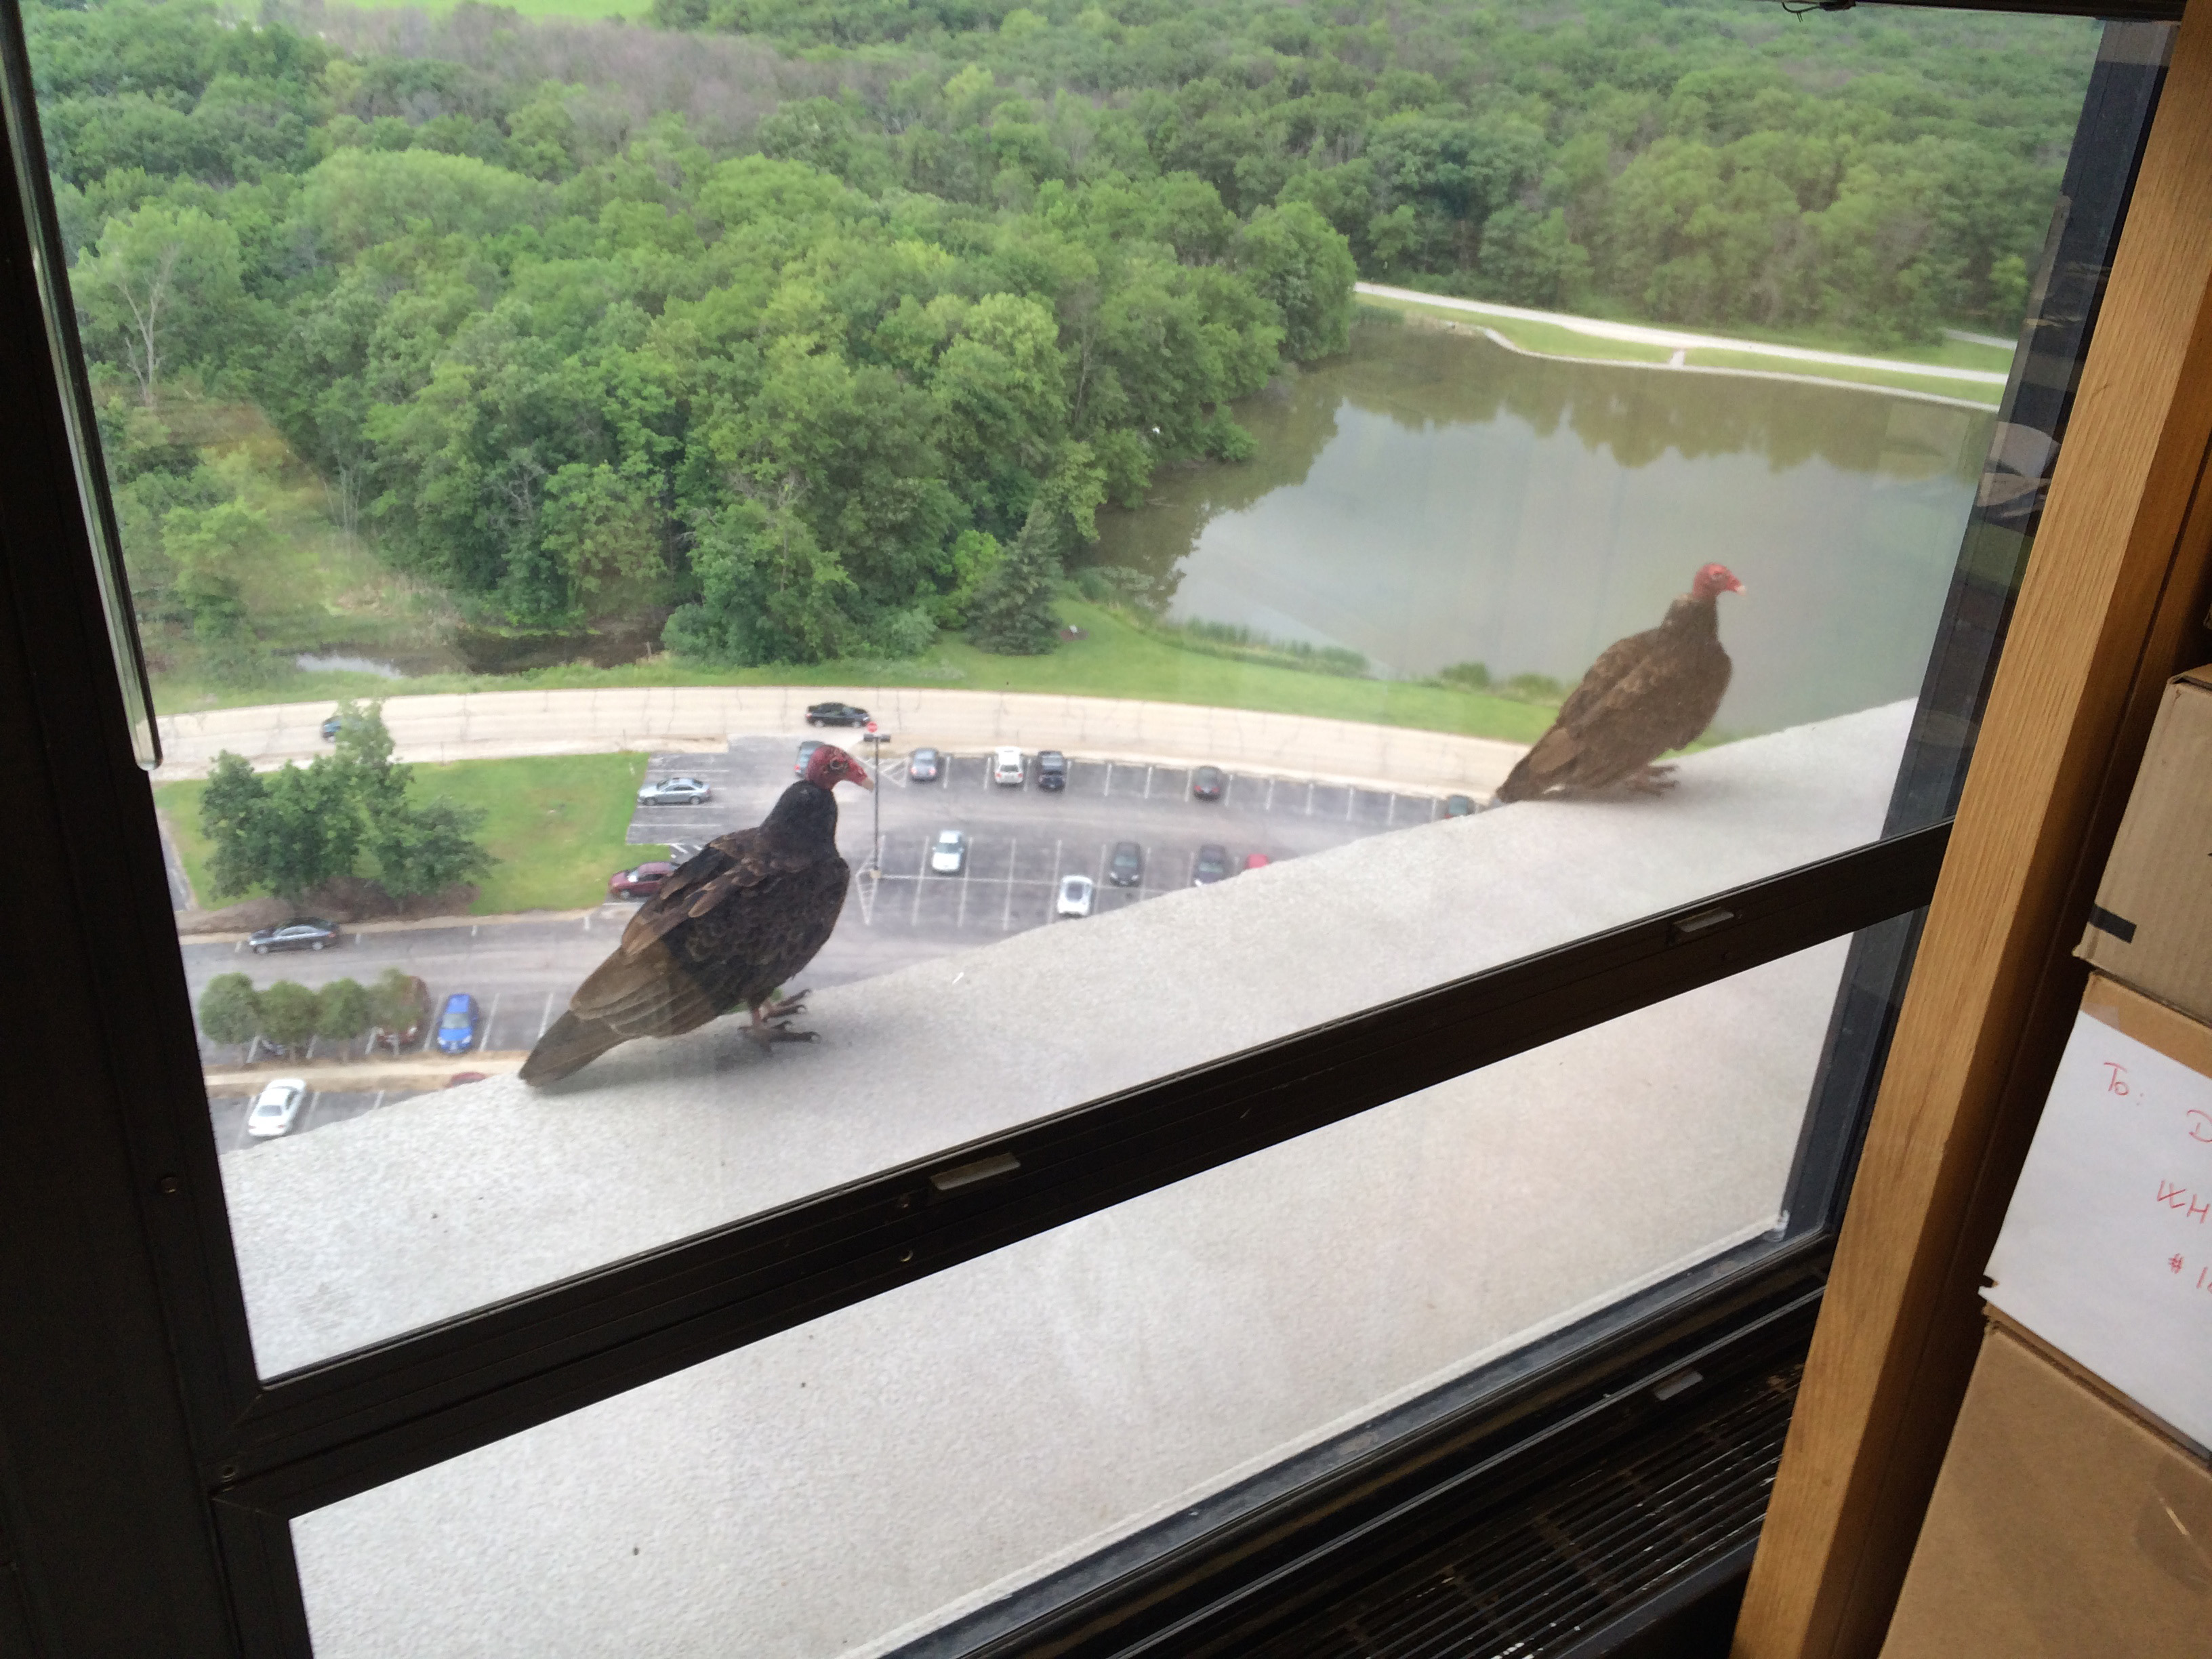 A pair of turkey vultures hangs out on the 14th-floor ledge. Photo: William Badgett, PPD